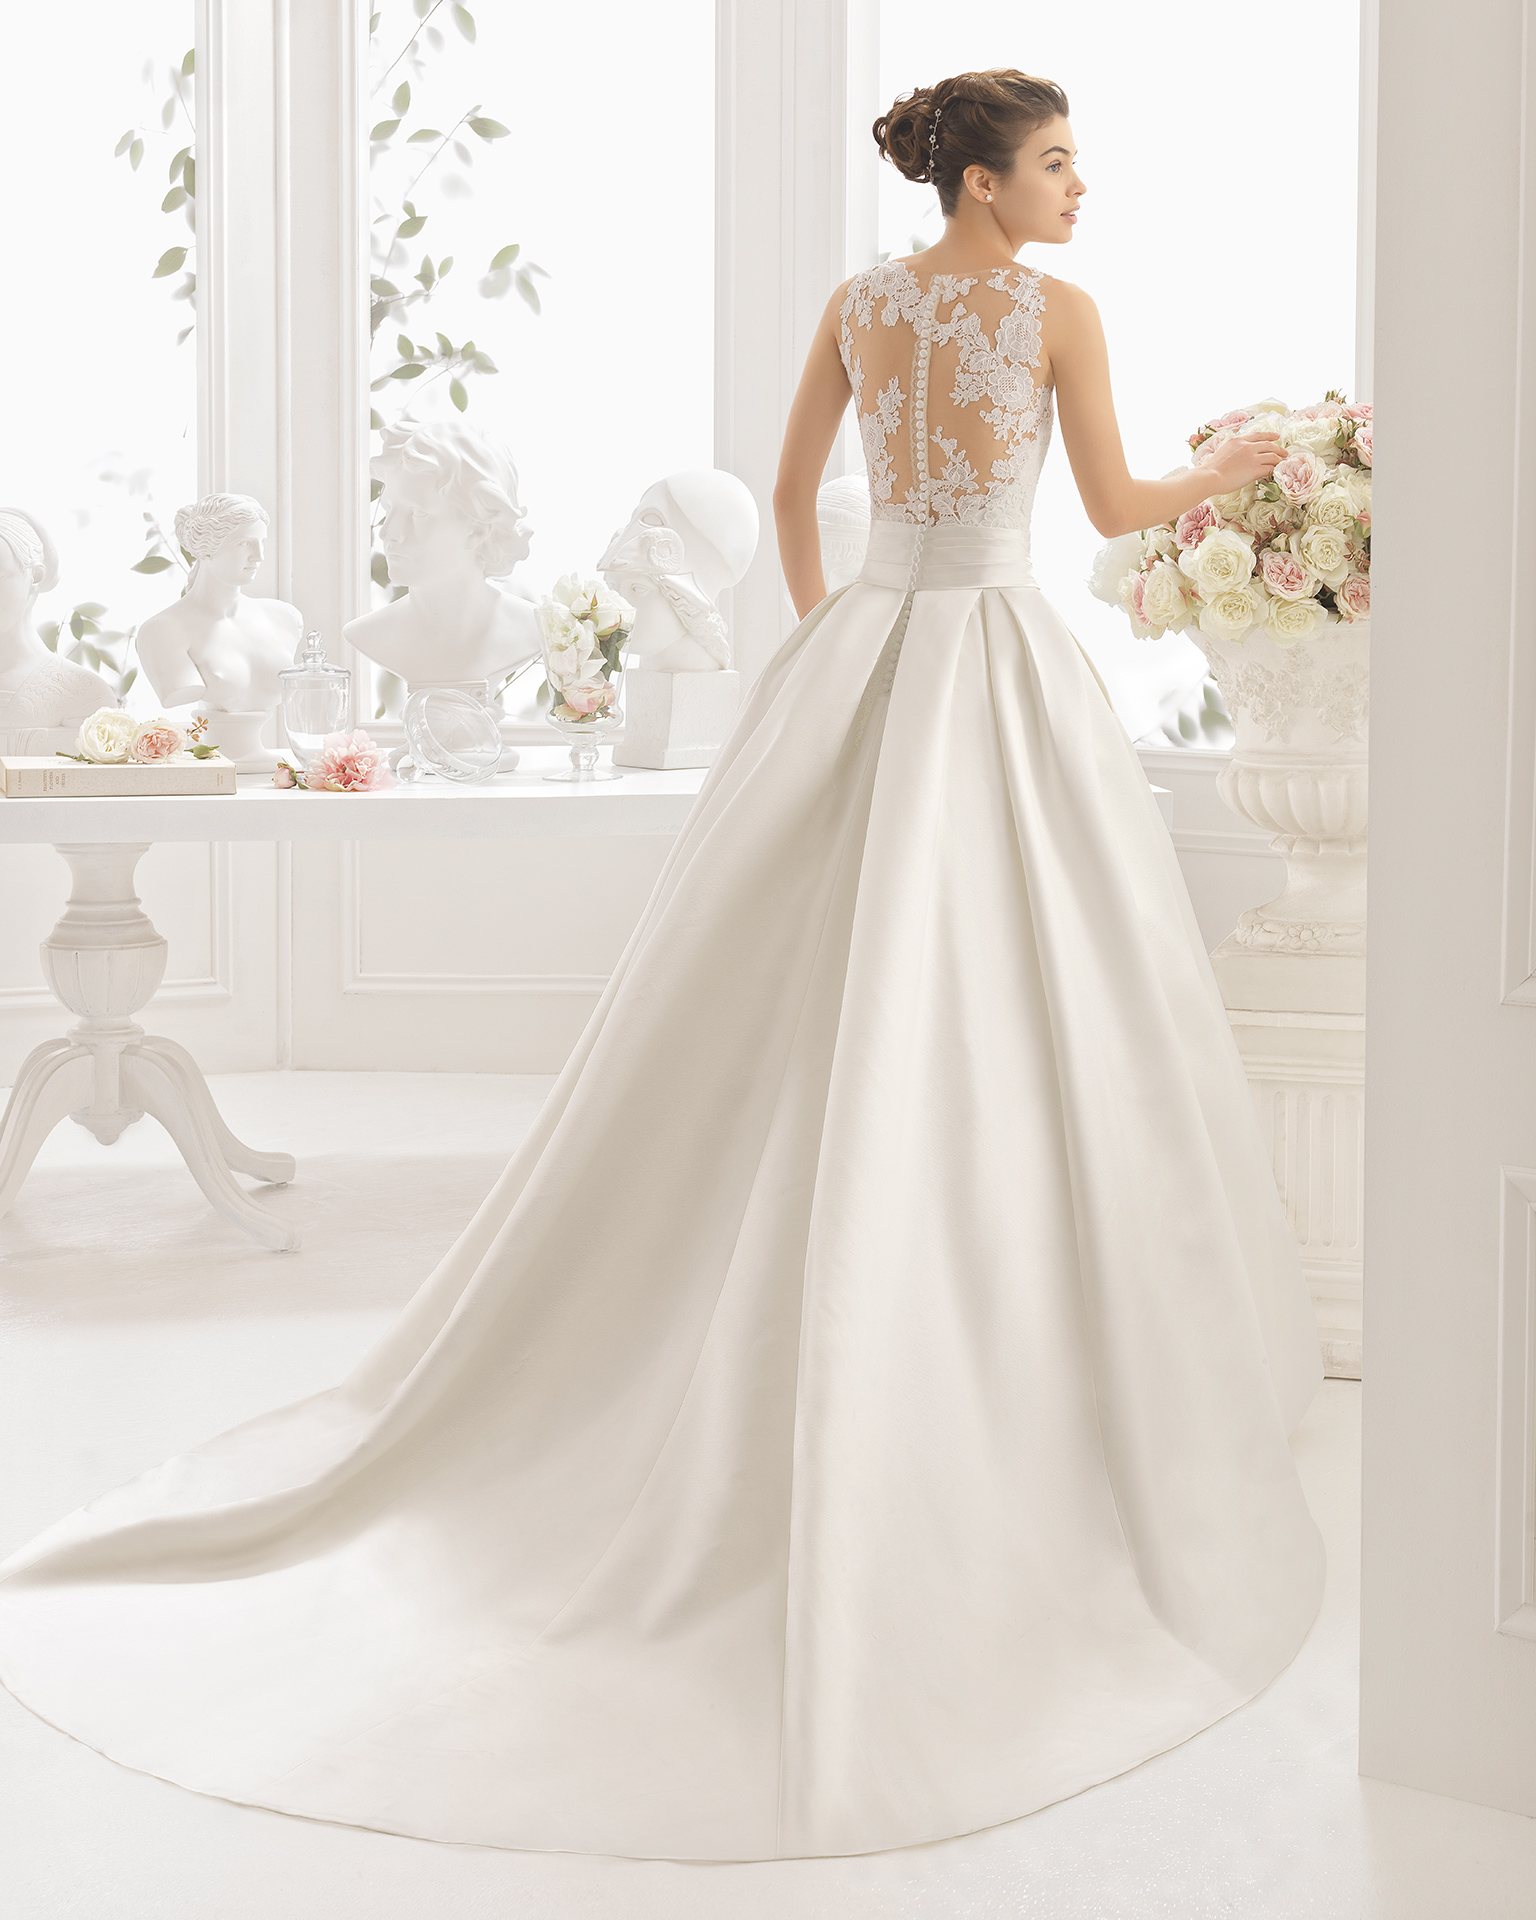 CIRA wedding dress - Aire Barcelona 2017